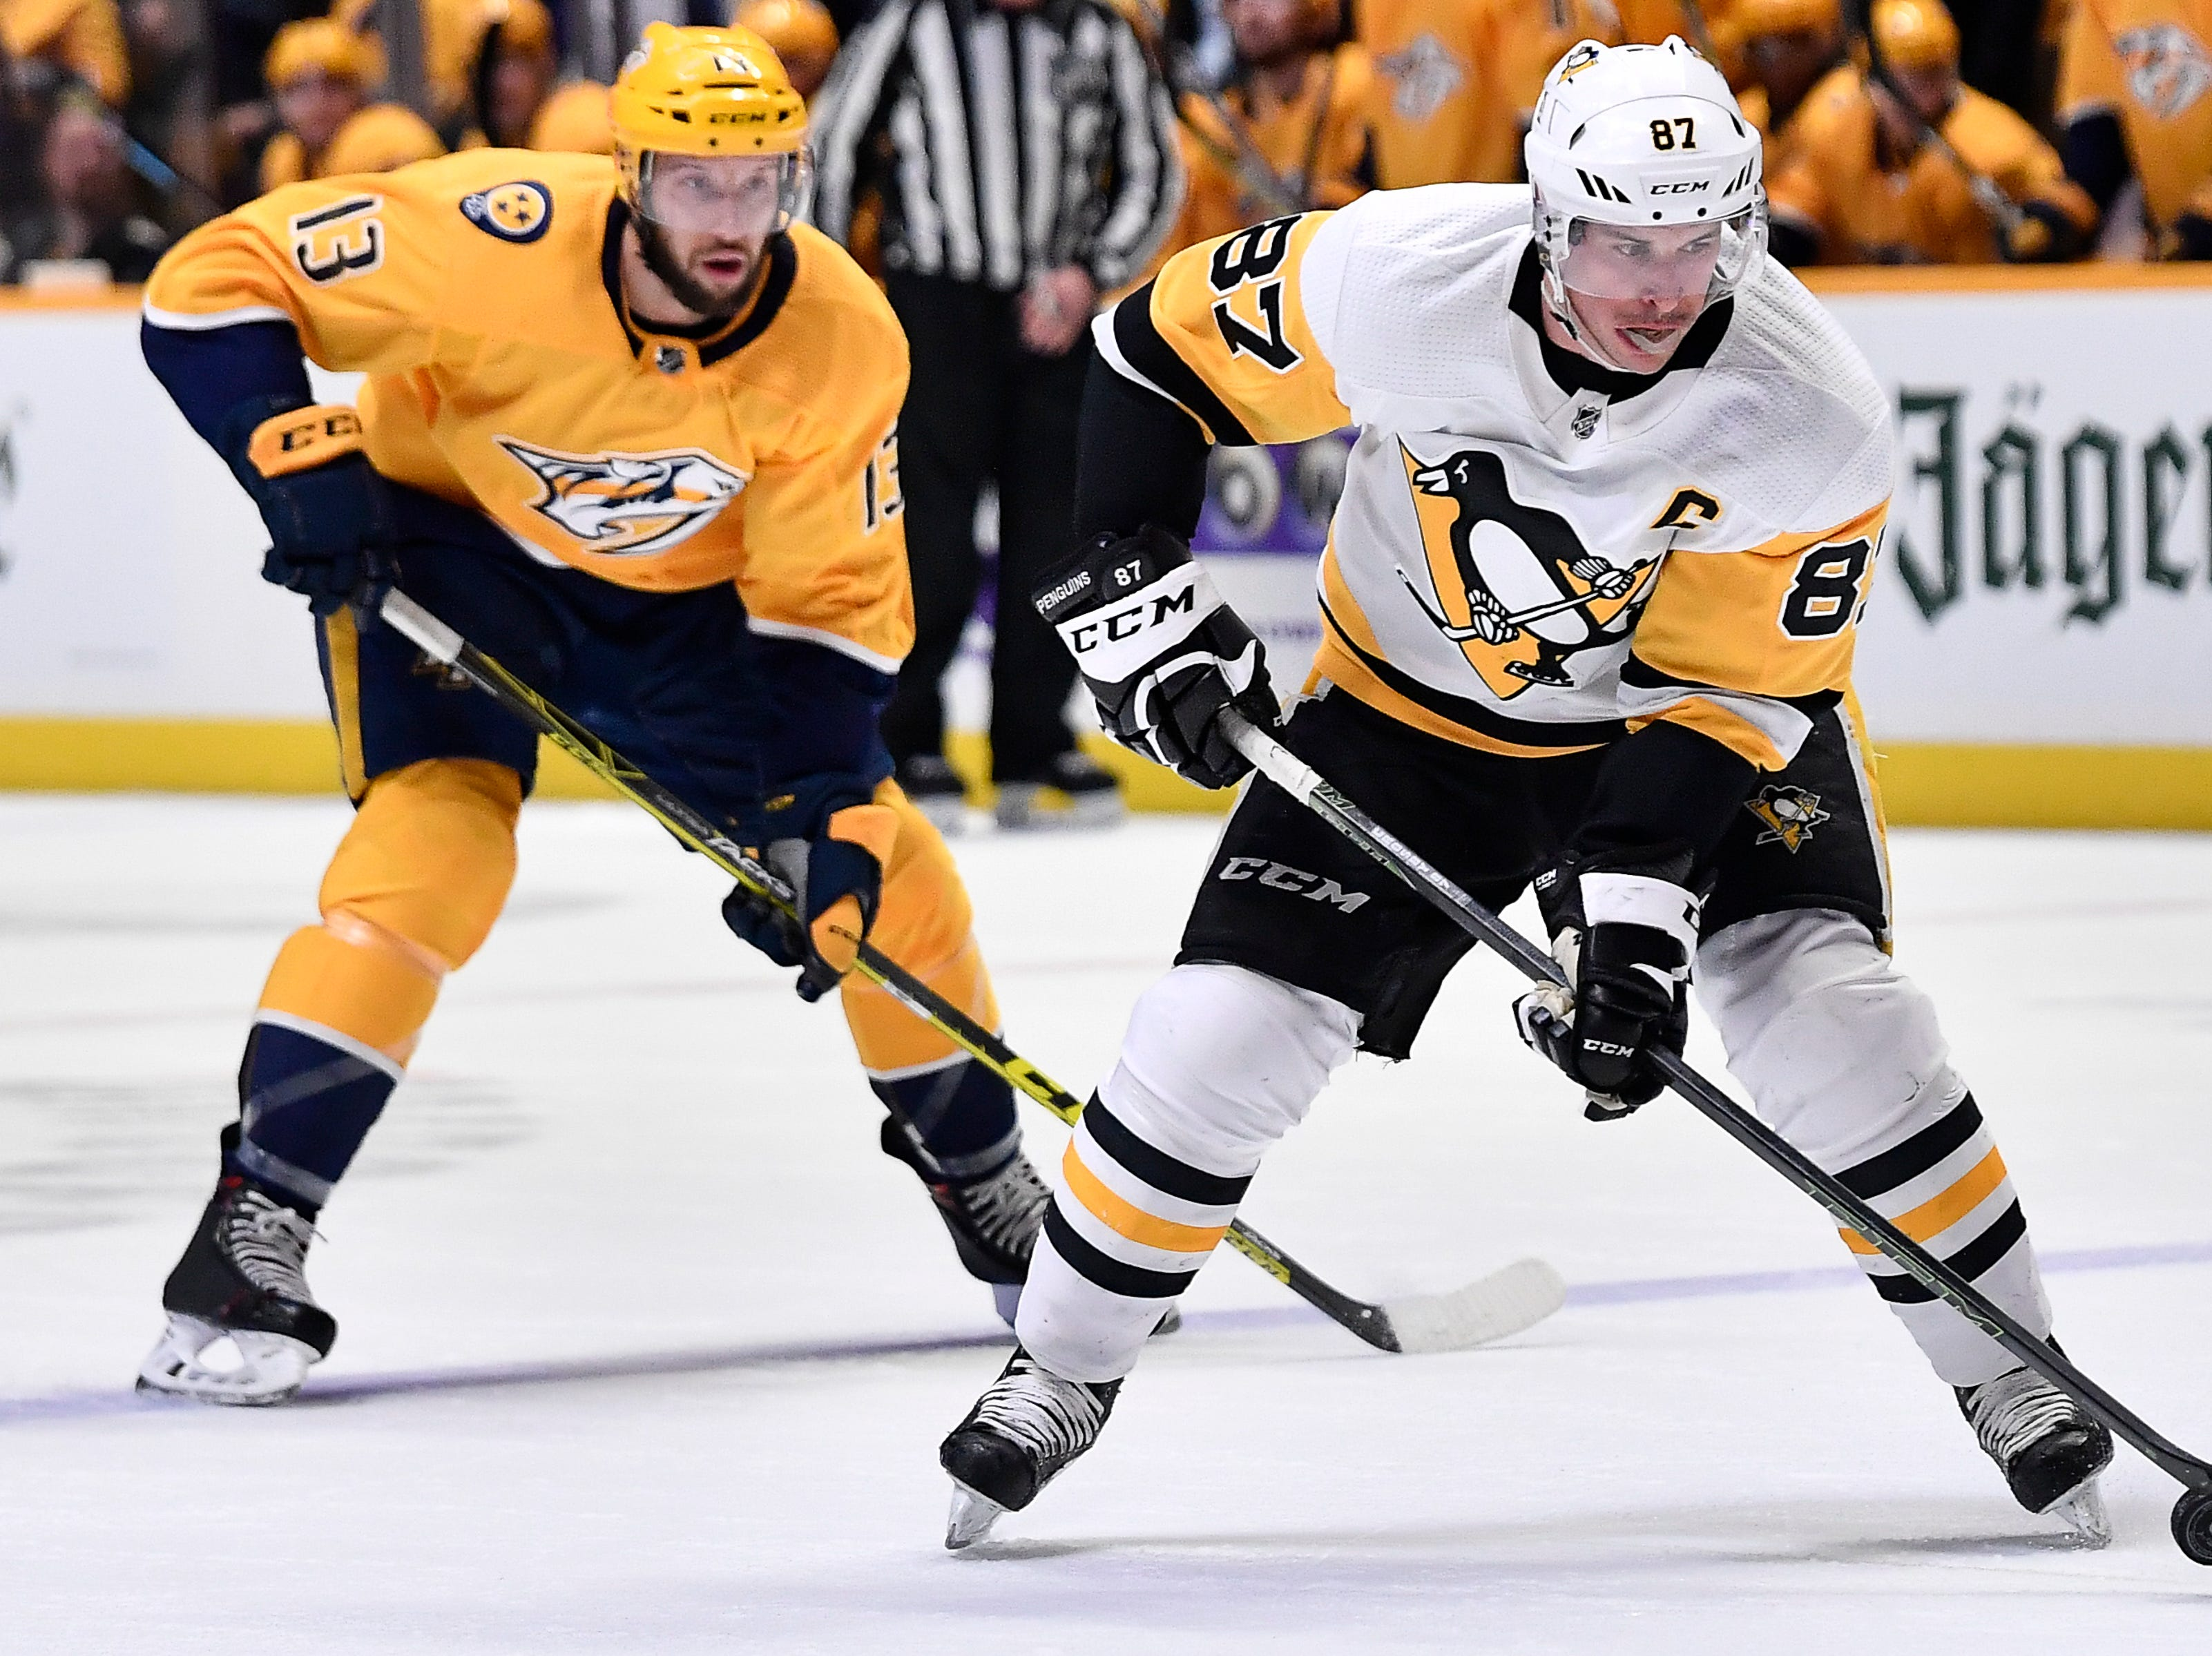 Penguins center Sidney Crosby (87) speeds past Predators center Nick Bonino (13) during the second period at Bridgestone Arena Thursday, March 21, 2019 in Nashville, Tenn.